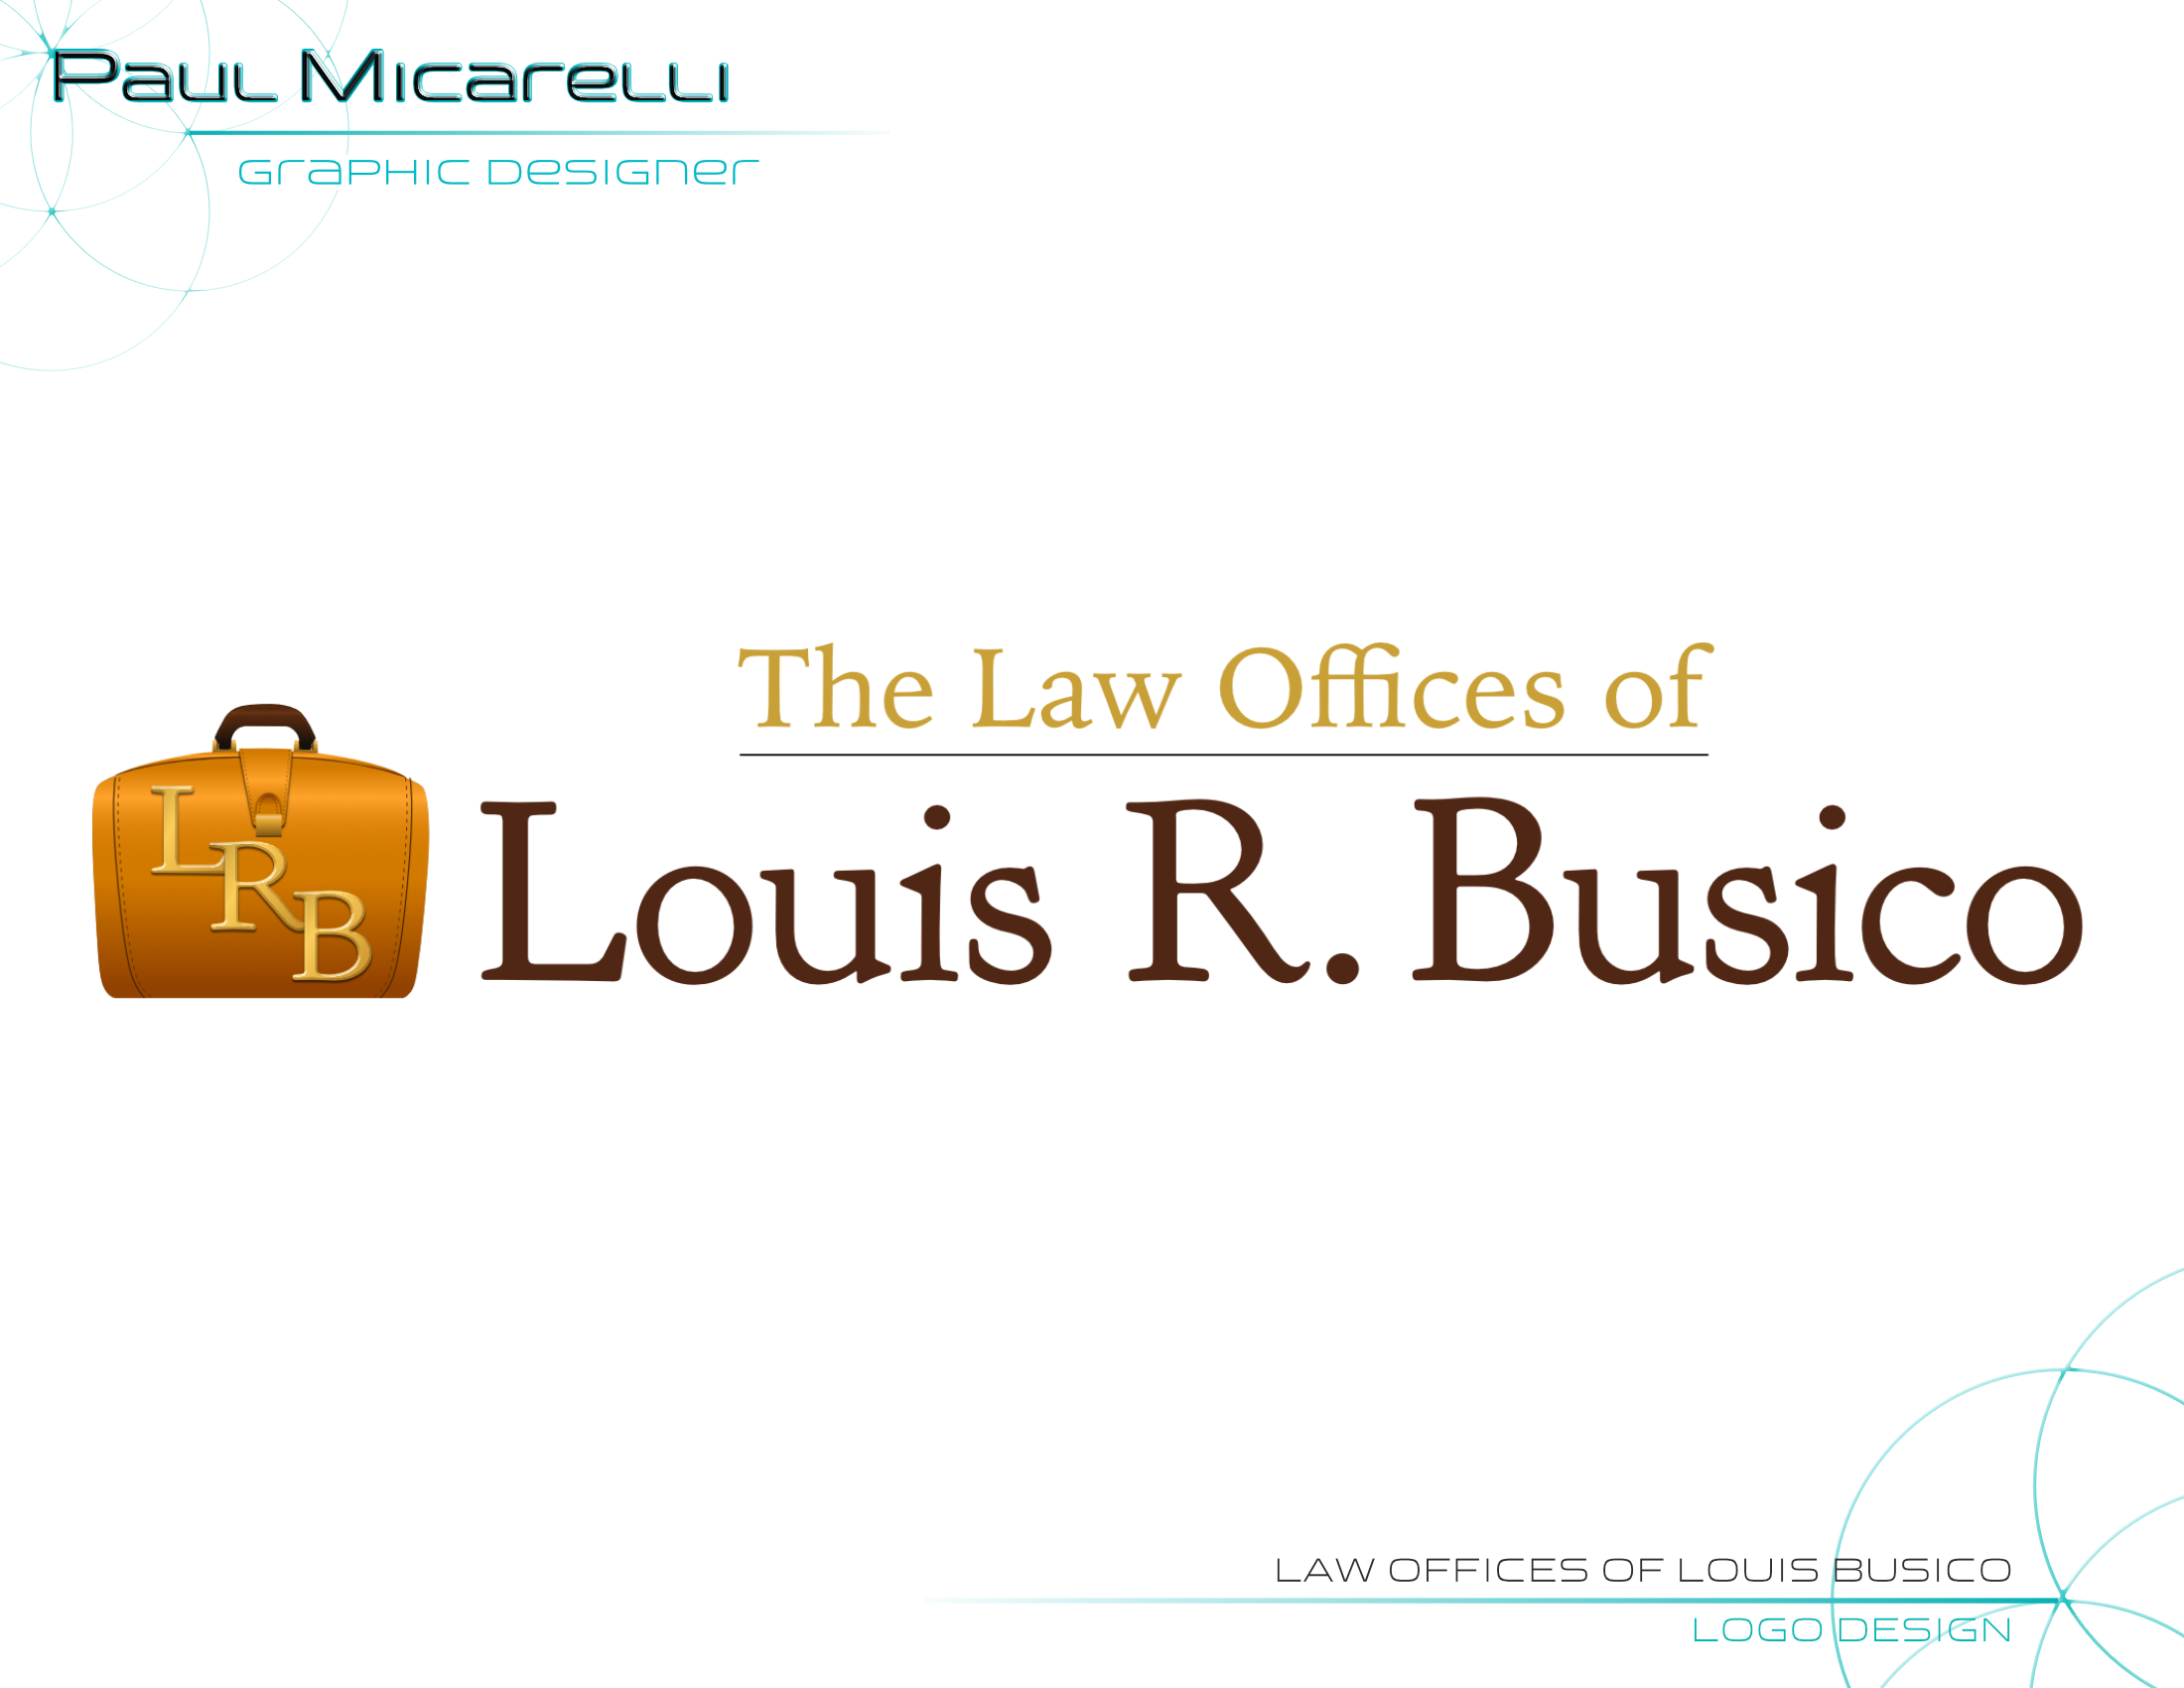 Paul-Micarelli-Louis Busico Law-Logo